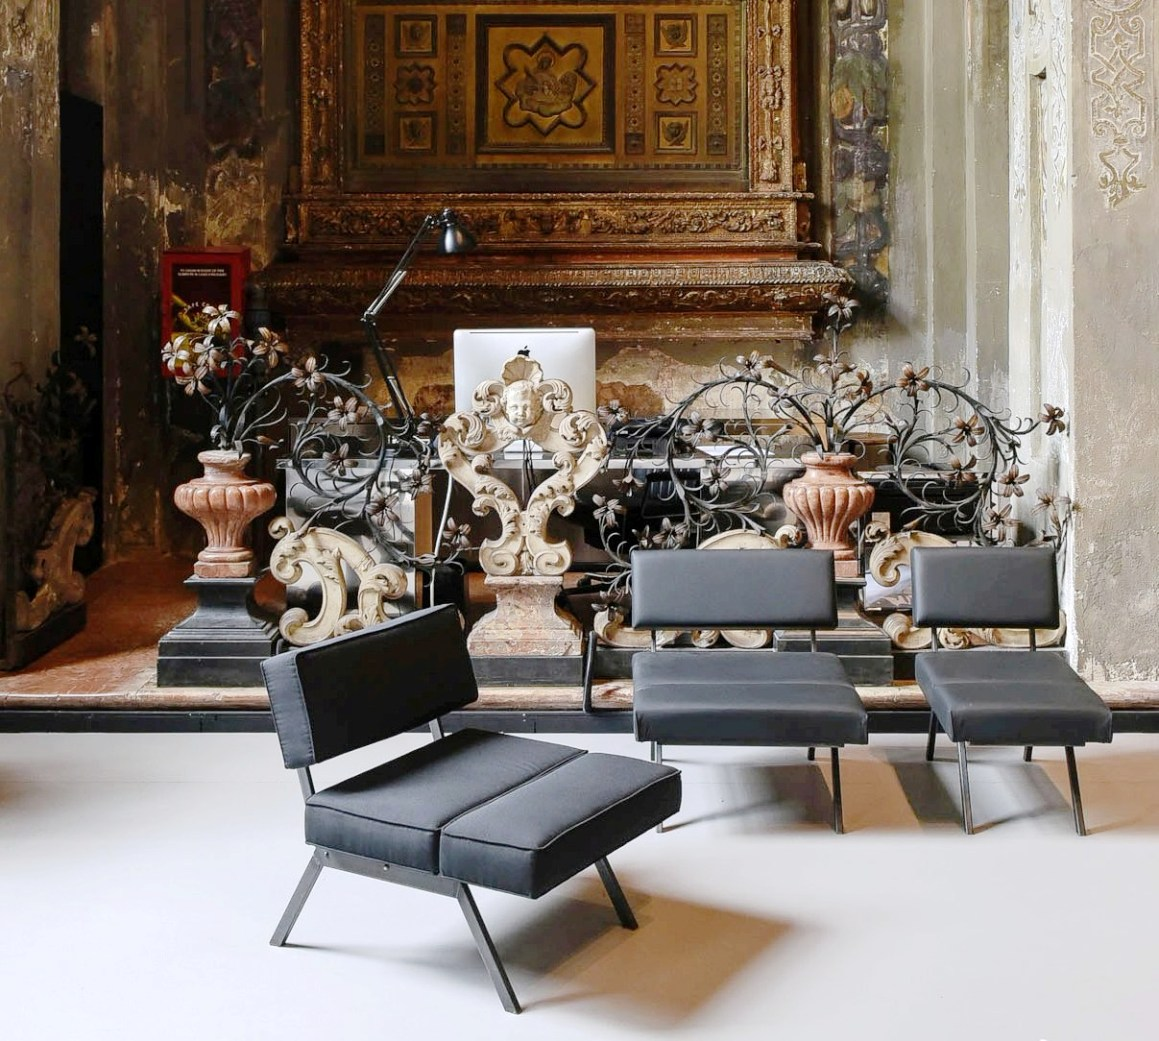 locatelli furniture salone milna 2015